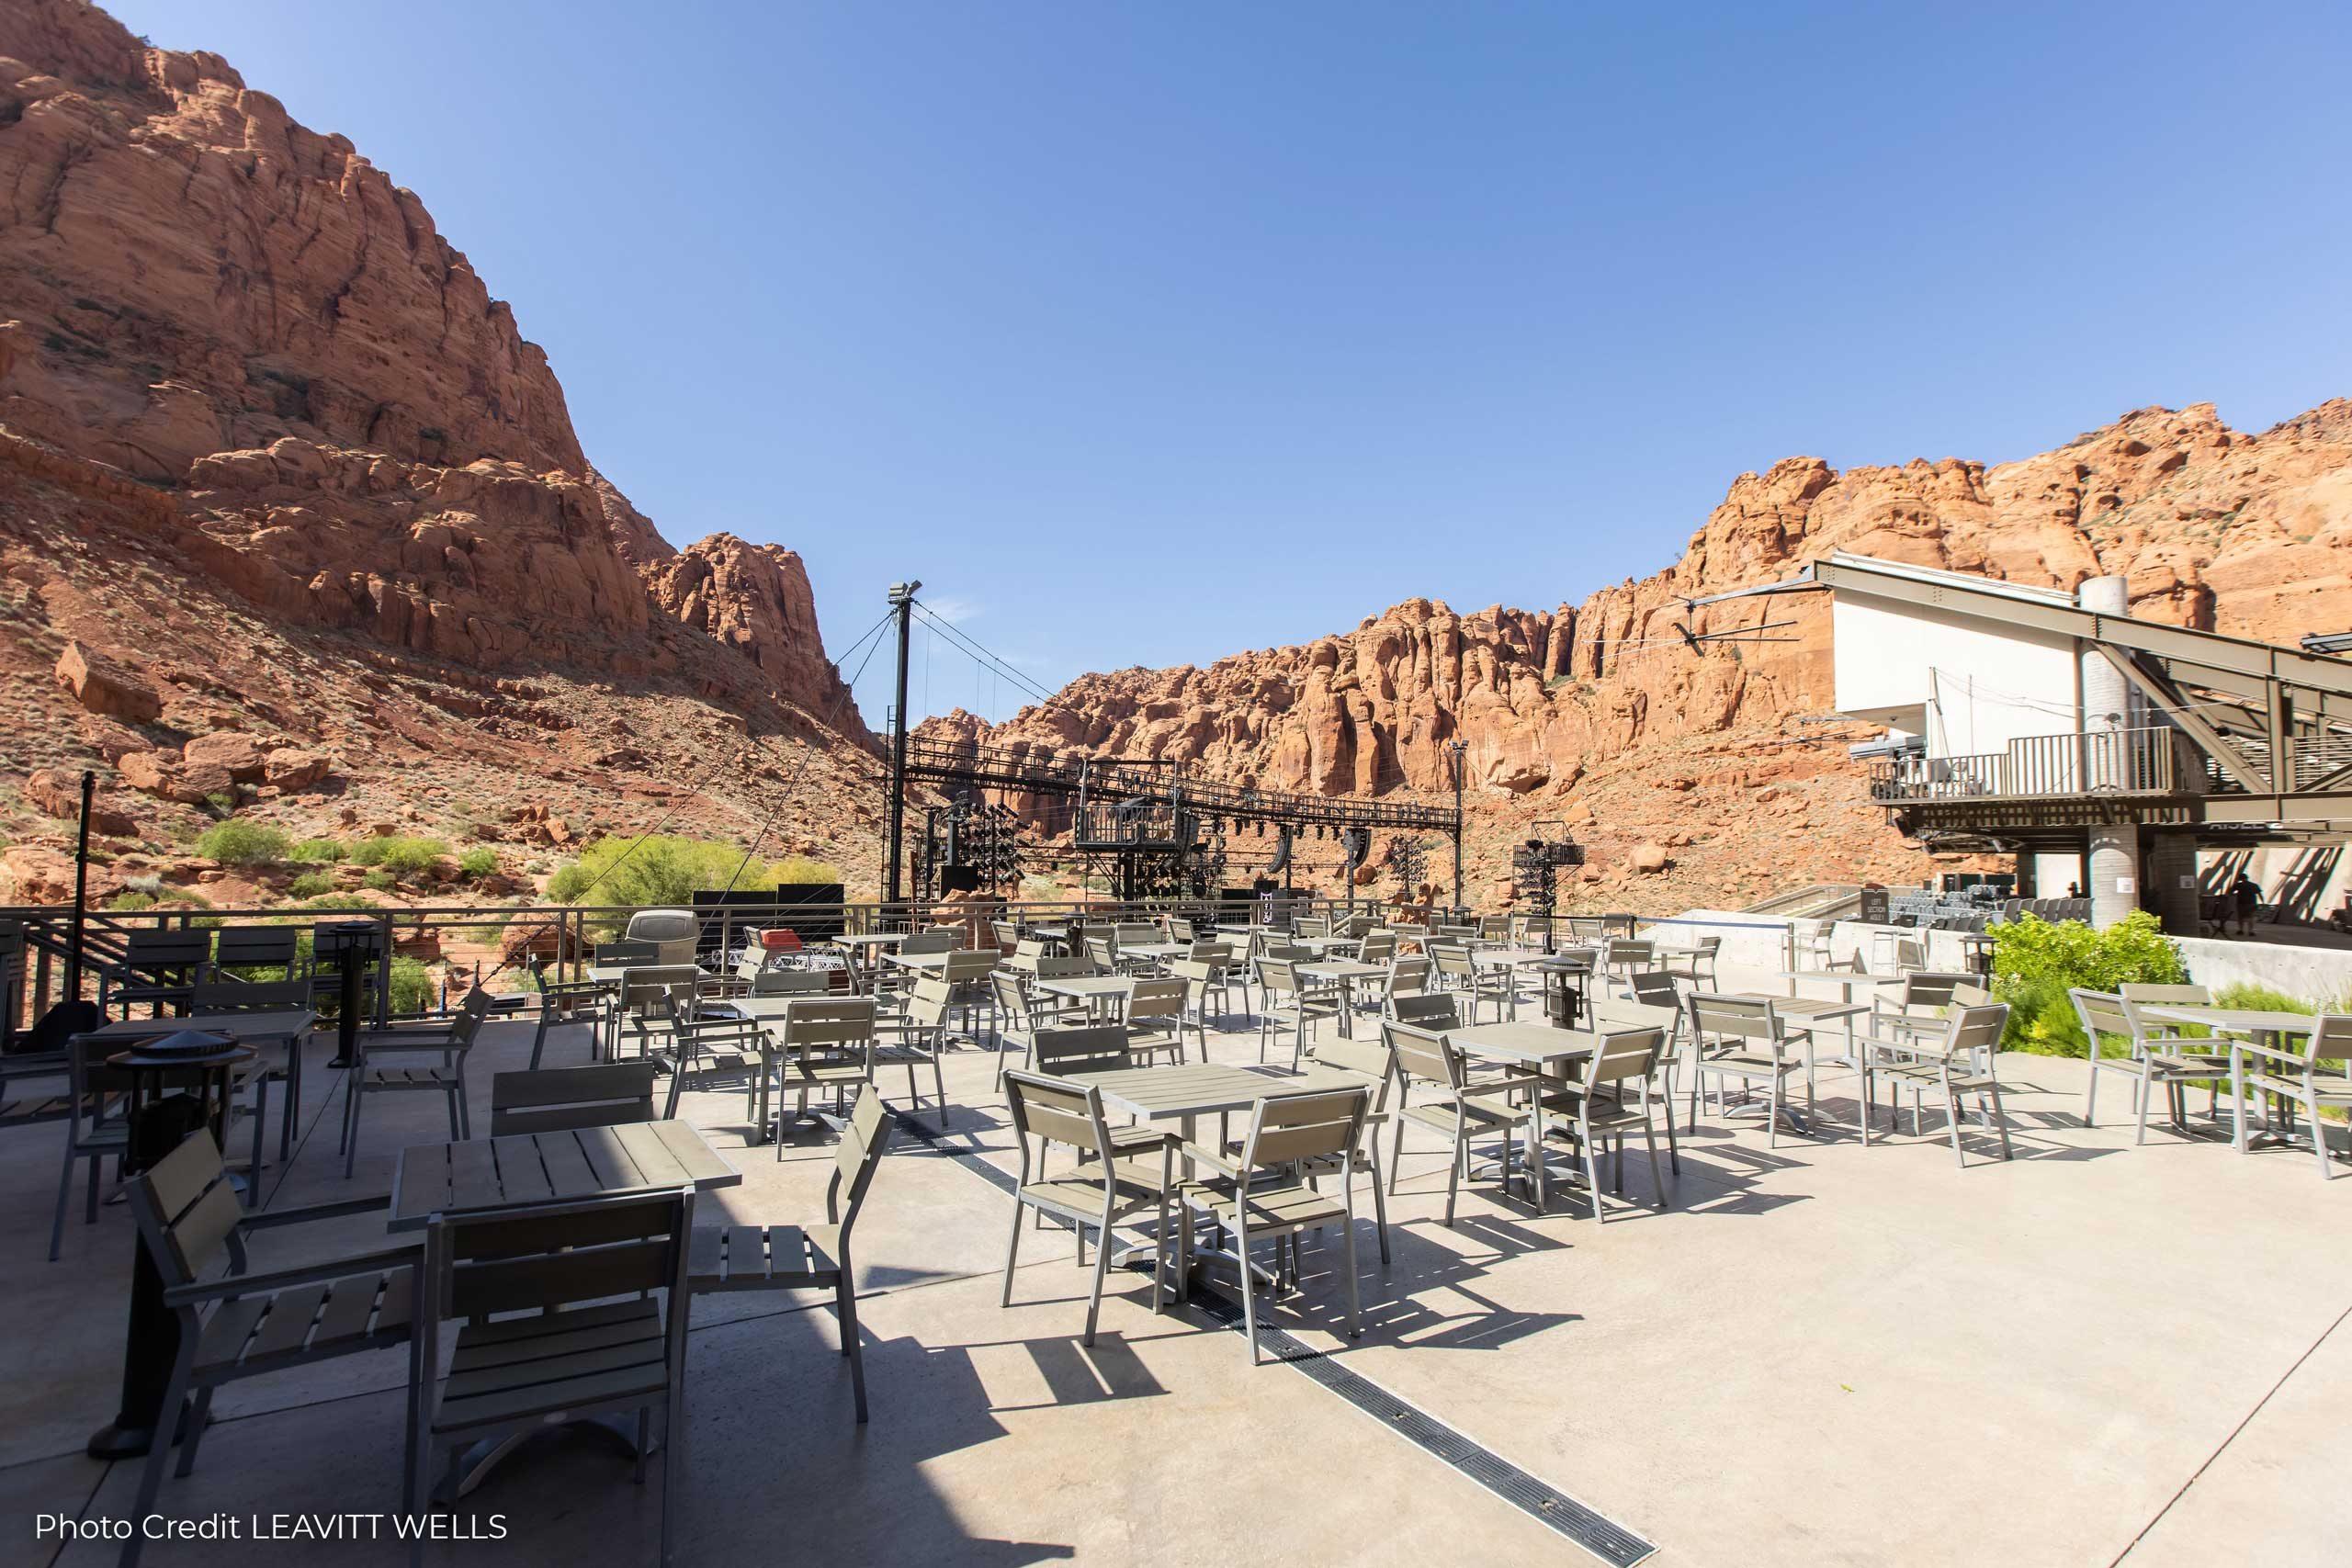 Tuacahn Cafe patio looks out over the canyon and amphitheatre.